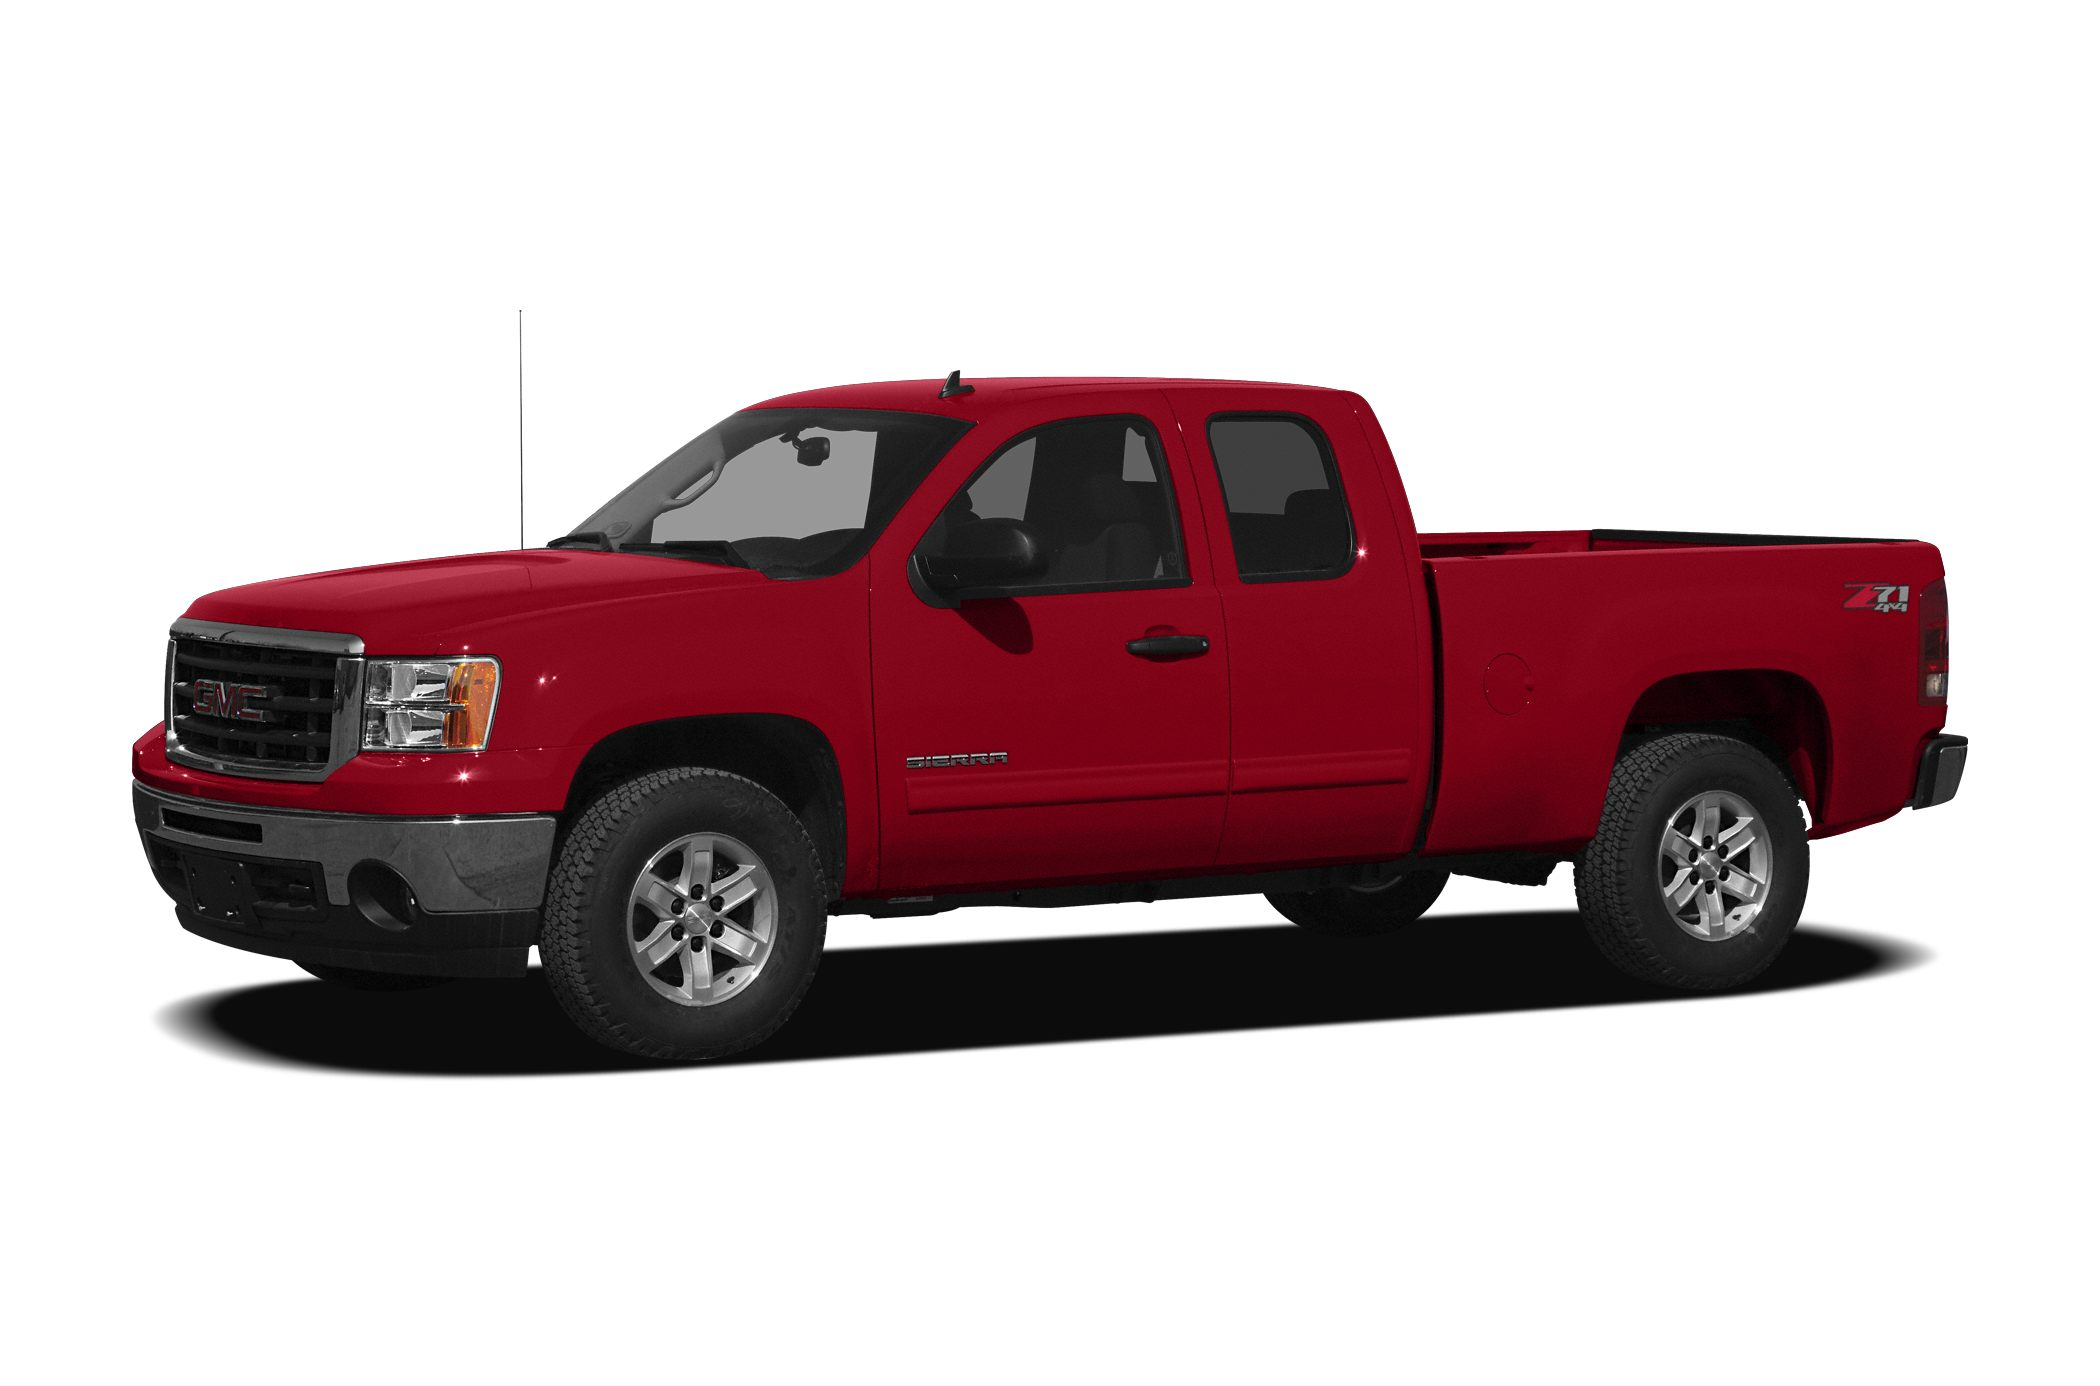 2010 GMC Sierra 1500 SLT Crew Cab Pickup for sale in Longmont for $0 with 111,765 miles